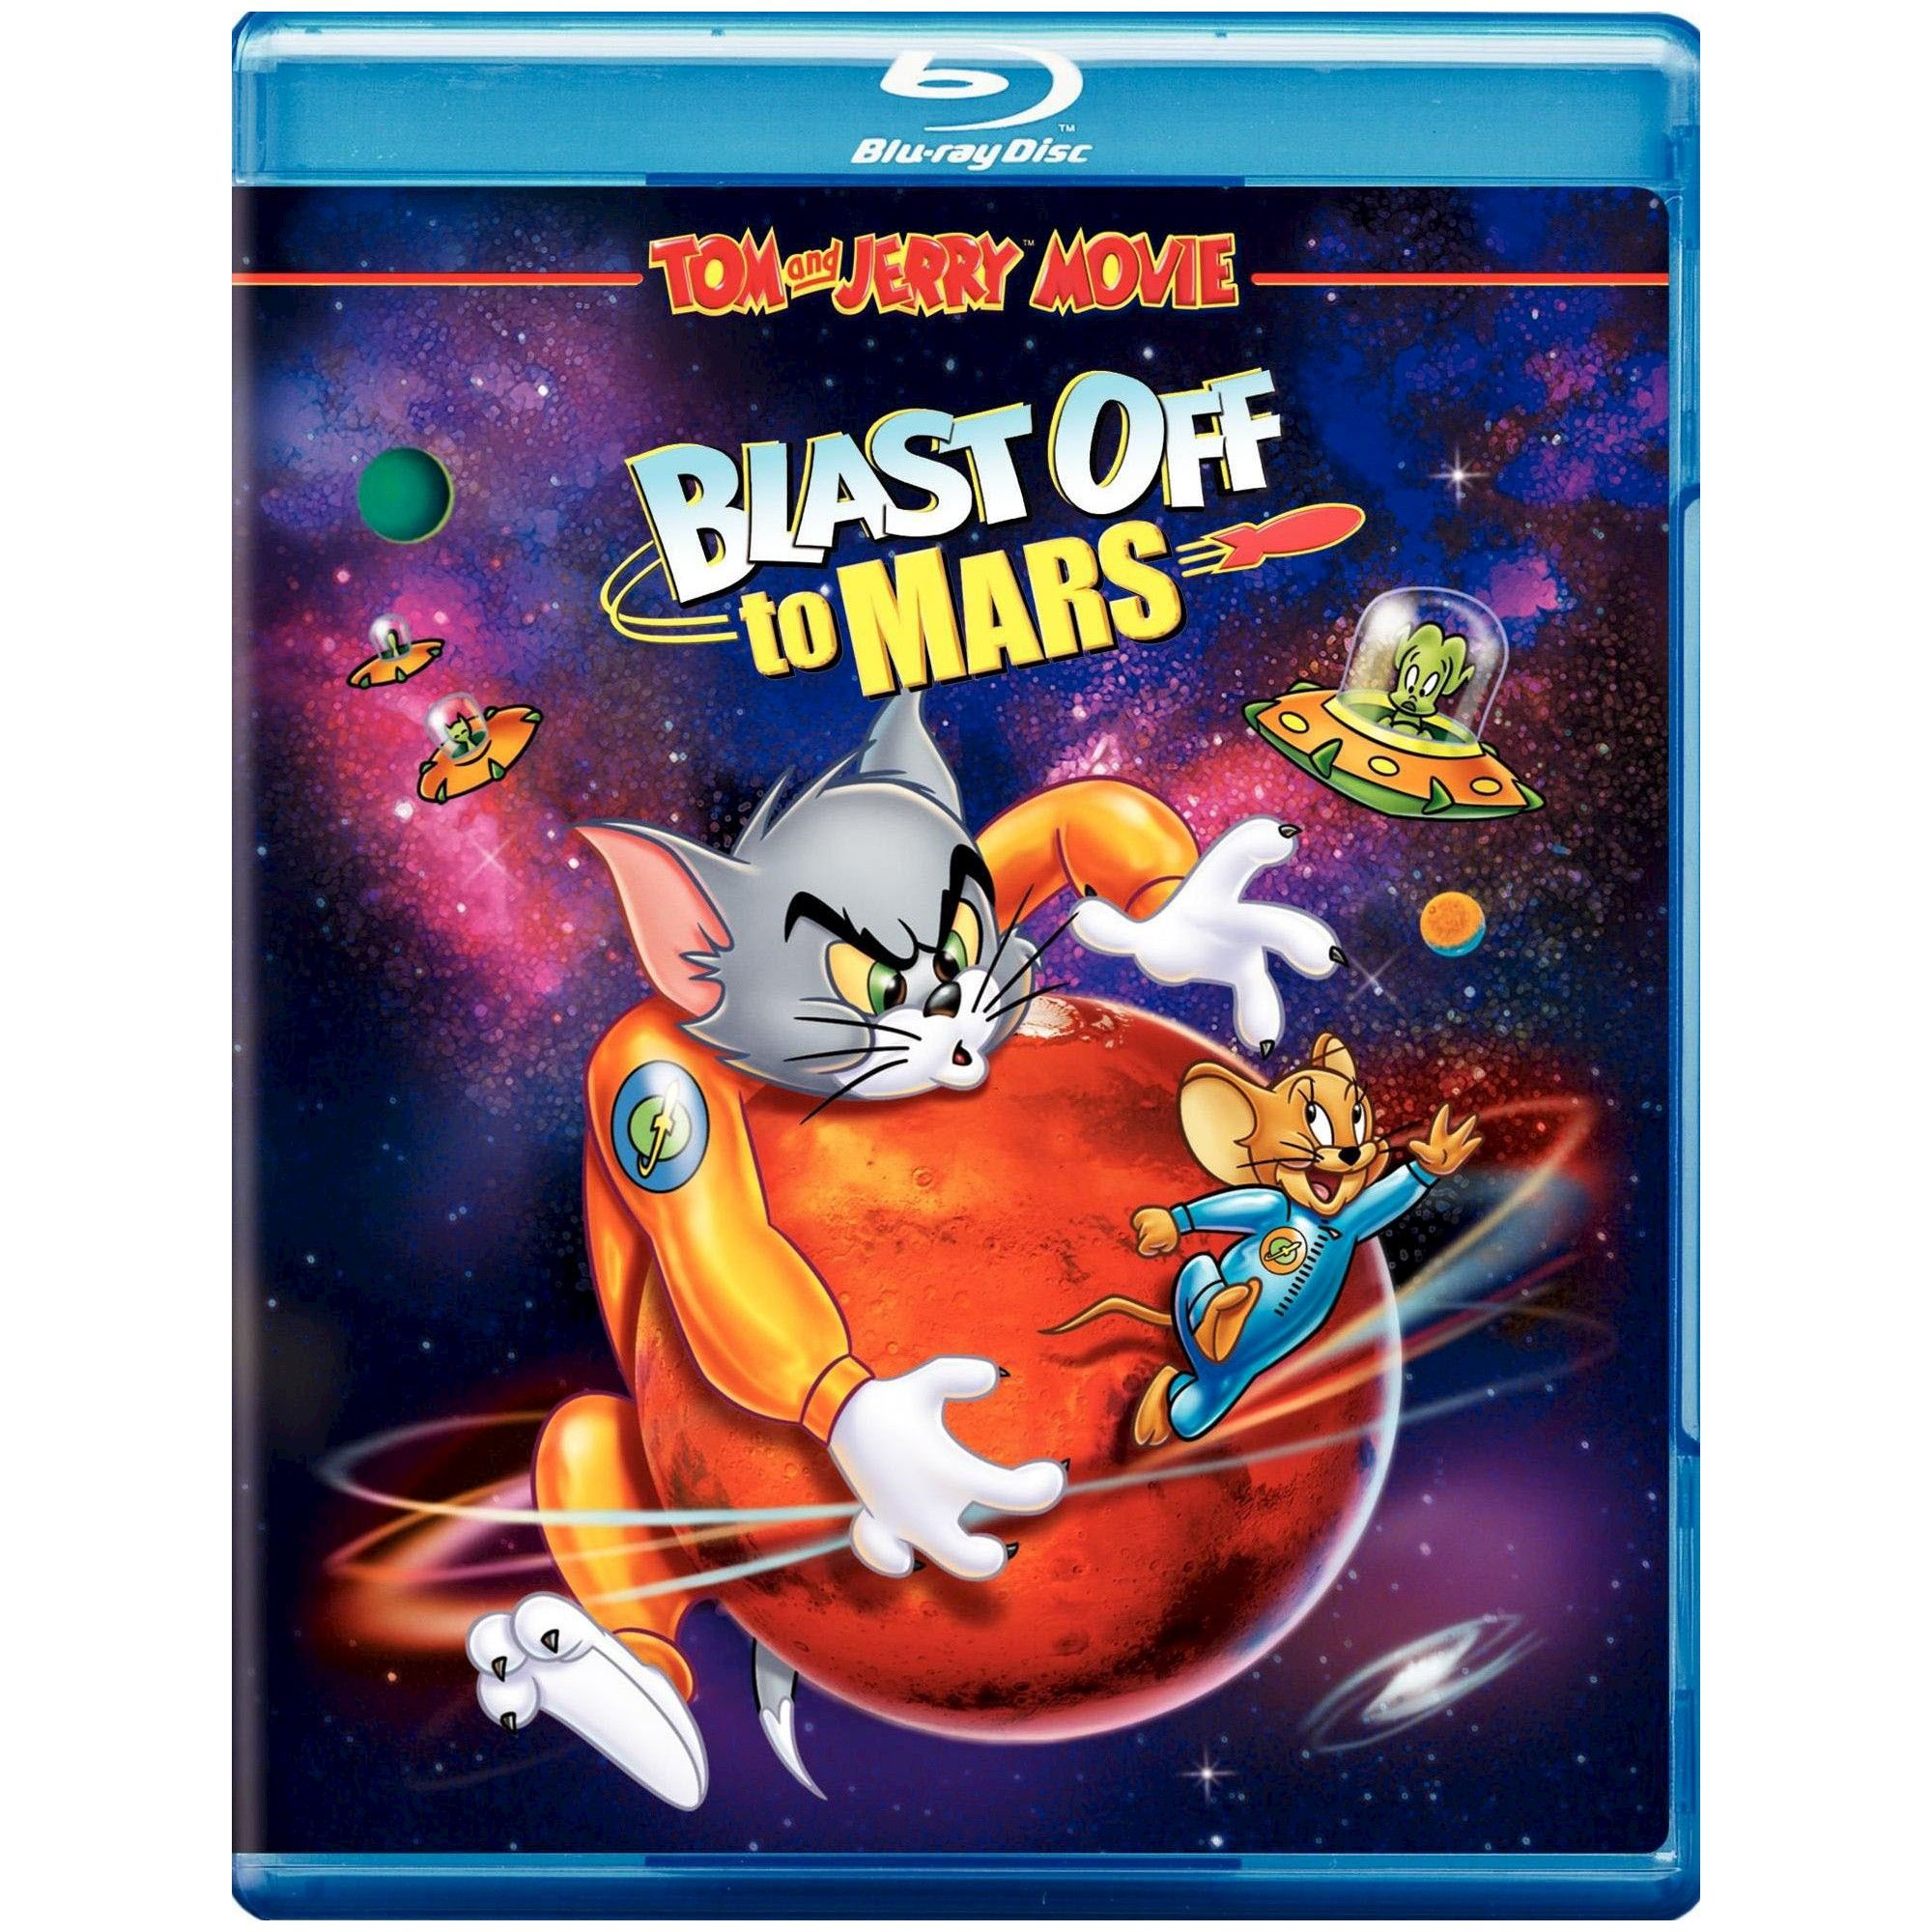 Tom Jerry Blast Off To Mars Blu Ray 2012 In 2021 Tom And Jerry Old Cartoon Movies Great Kids Movies